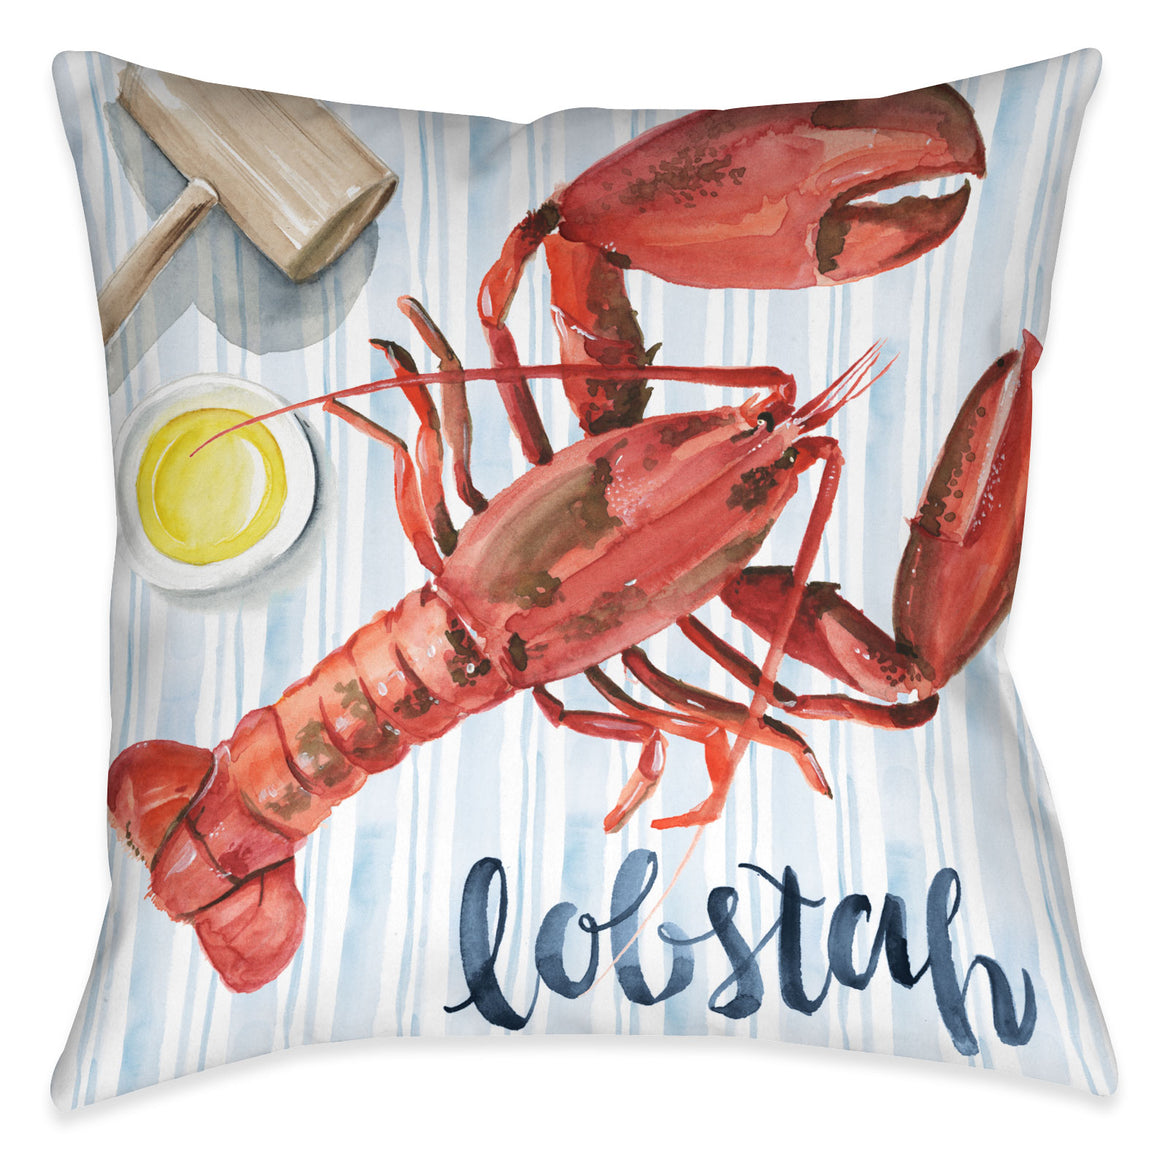 New England Summer II Outdoor Decorative Pillow